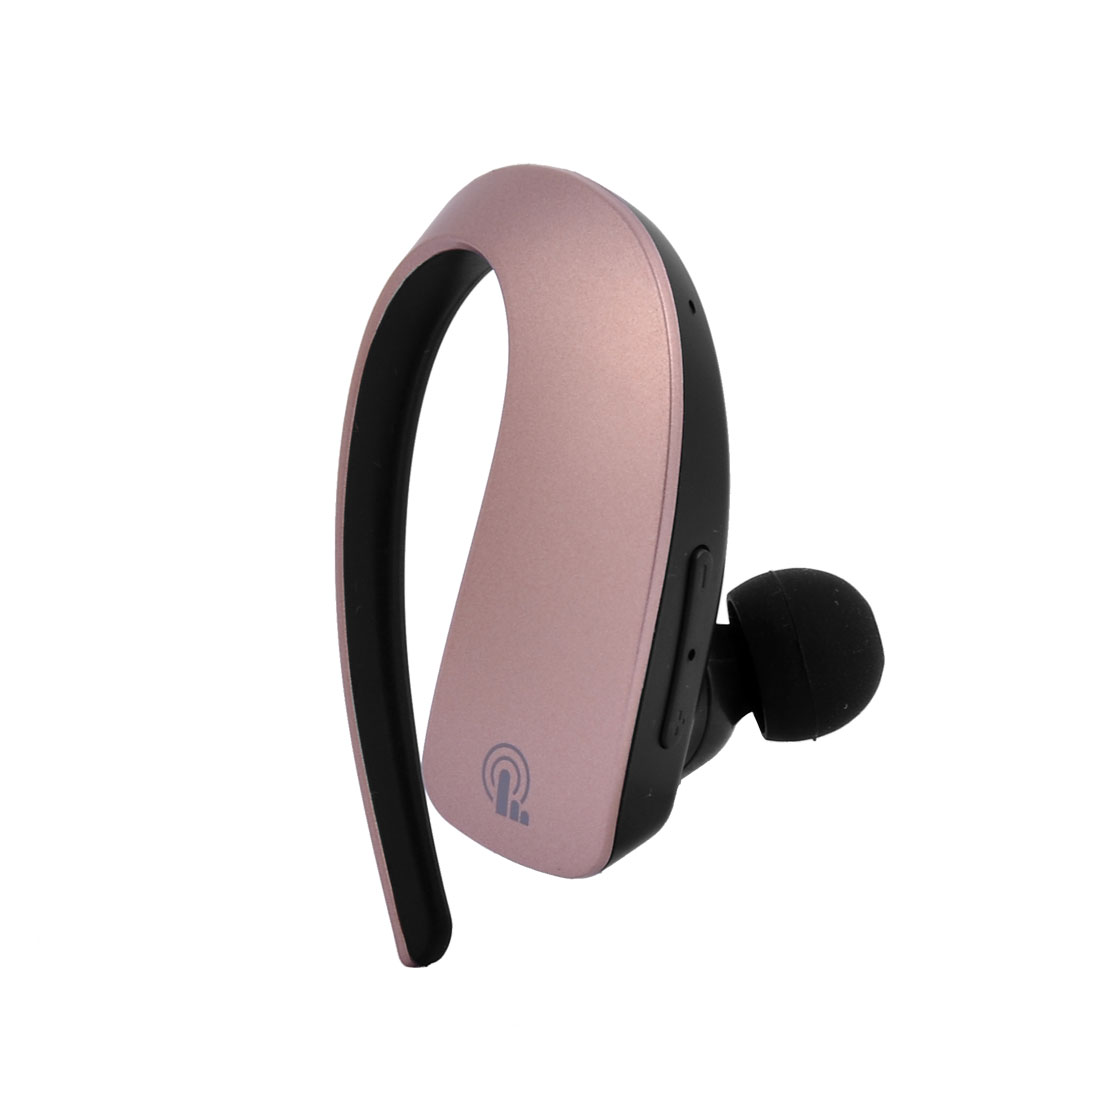 Car Noise Reduction Earhook Wireless Stereo V4.1 bluetooth Headphone Rose Gold